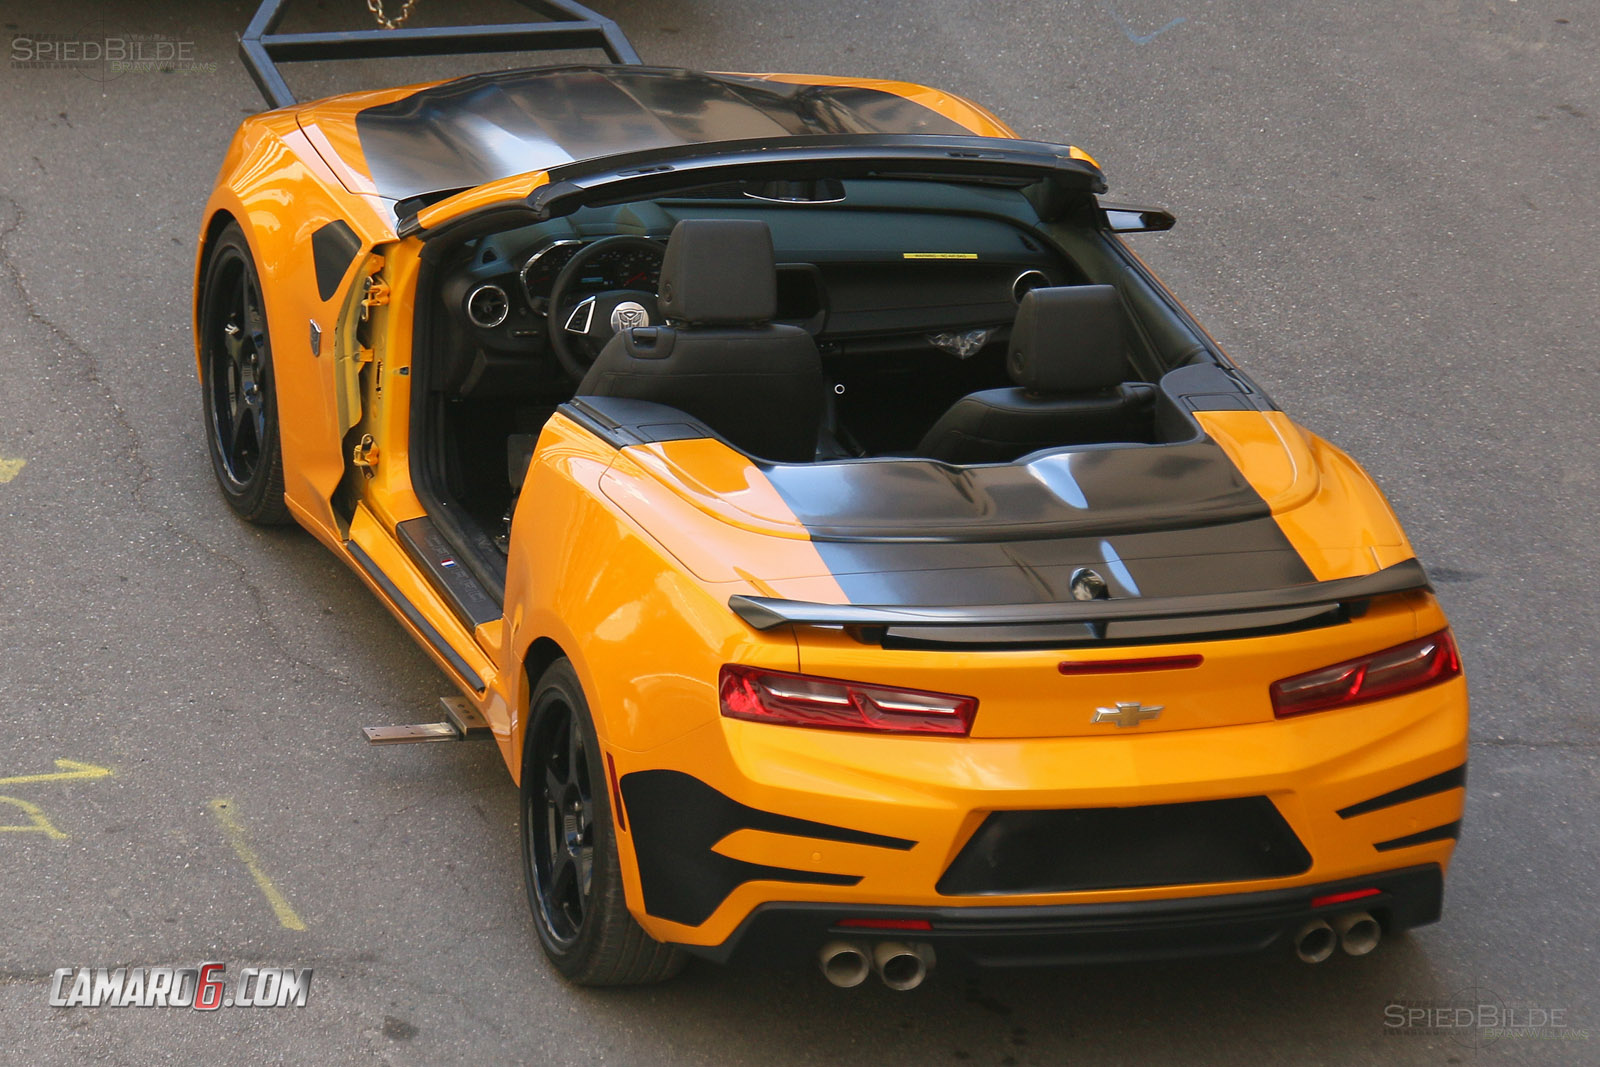 First Full Look At New Bumblebee Camaro For Transformers 5